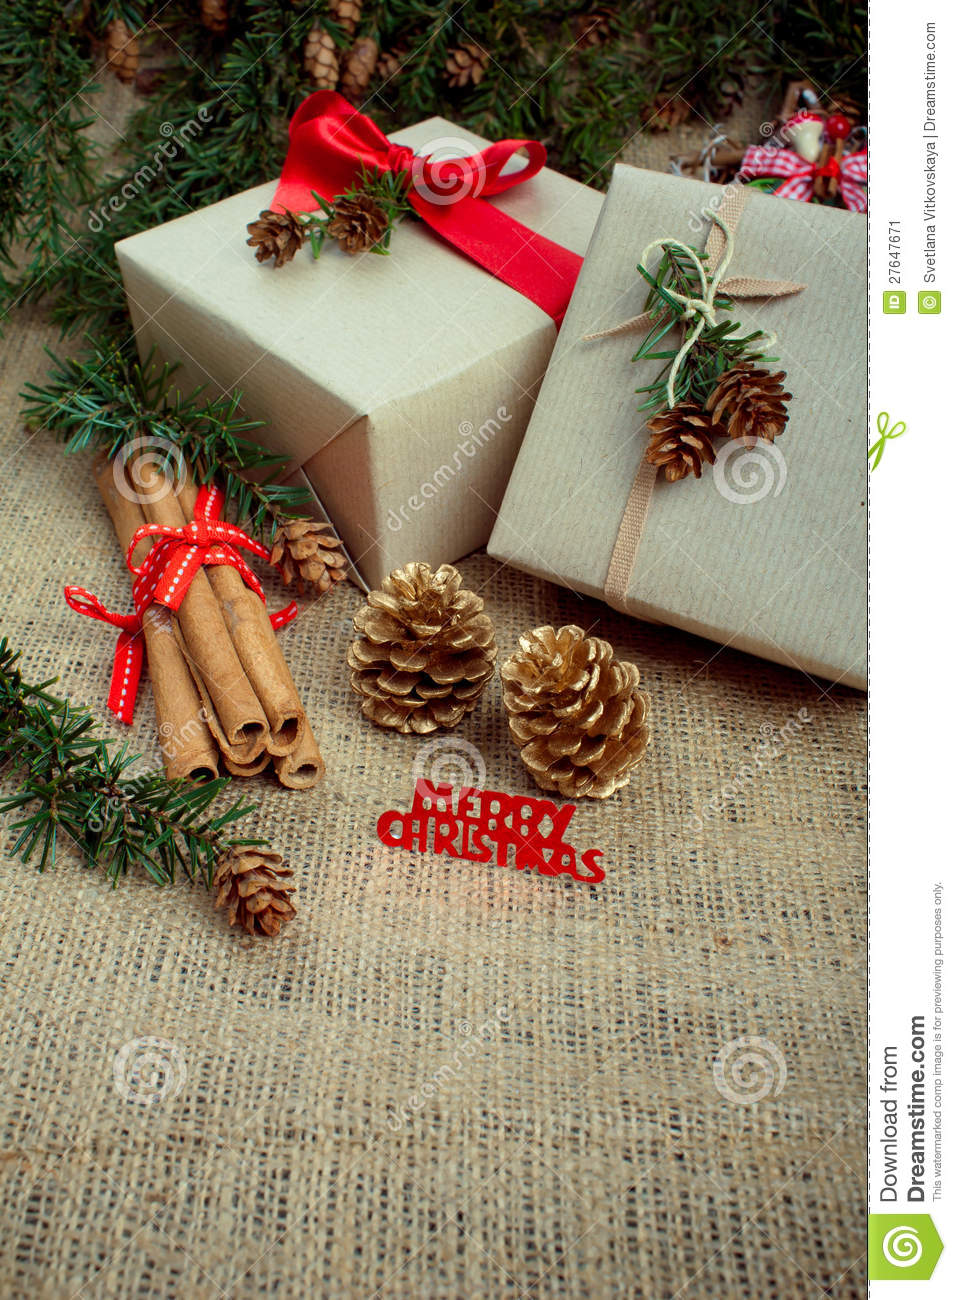 christmas gift boxes and decorations rustic style - Christmas Gift Decorations